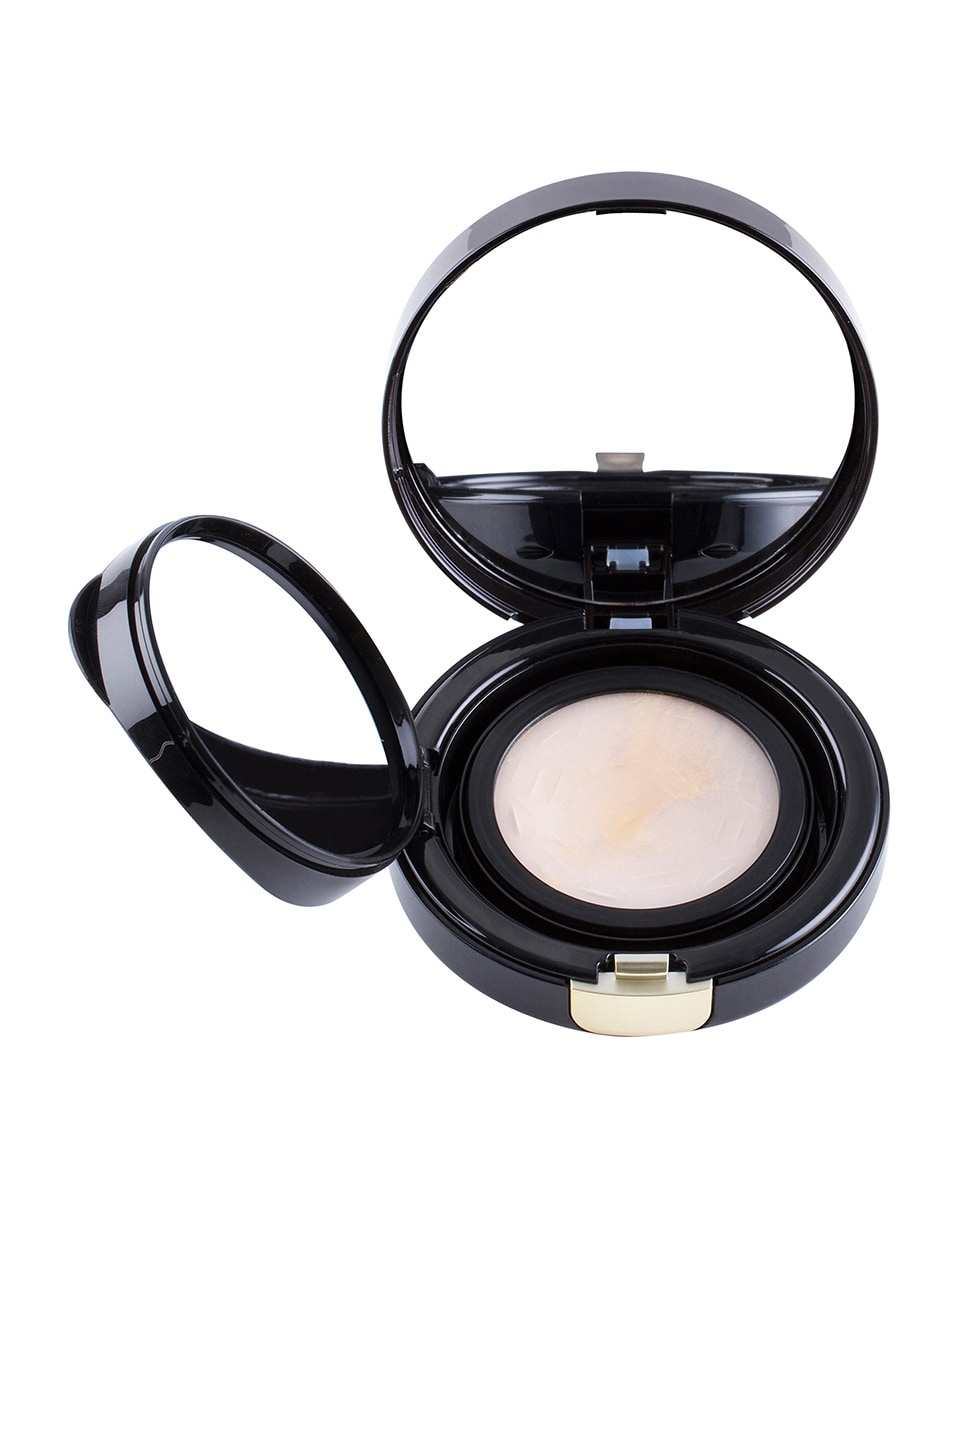 Kevyn Aucoin The Gossamer Loose Powder in Diaphanous